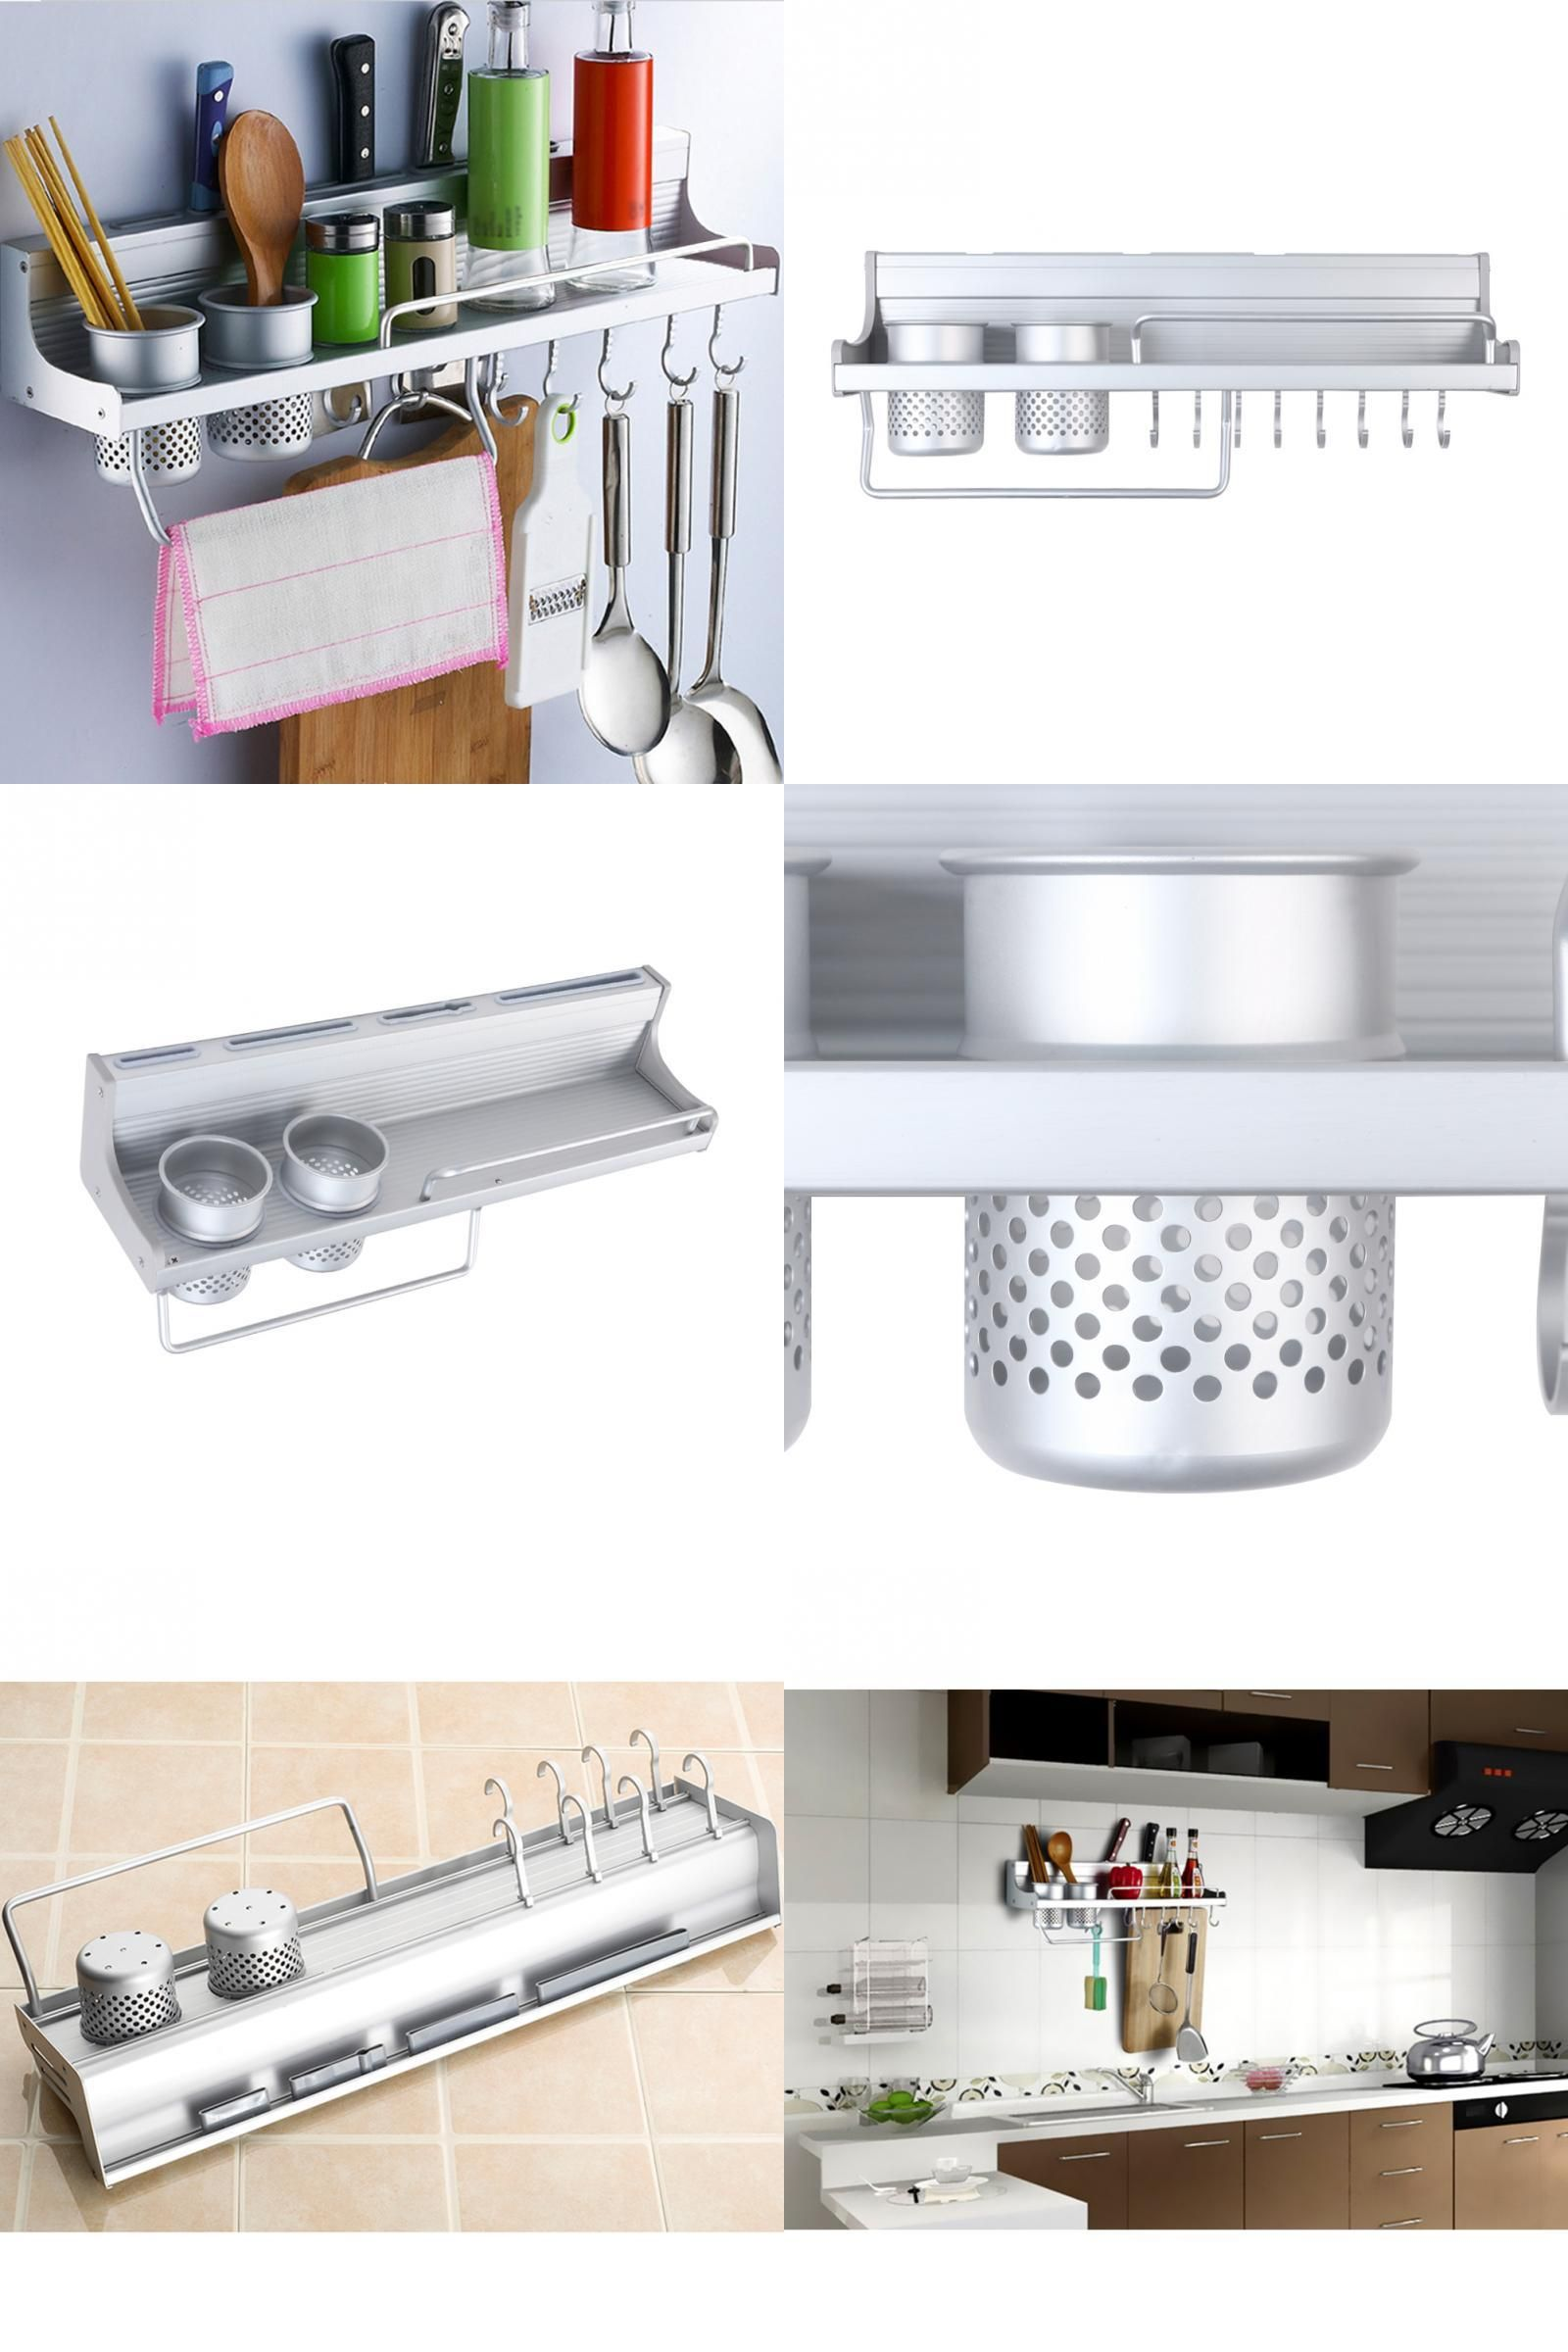 Visit to Buy] Space Aluminum Kitchen Shelf Wall Mount Spice ...